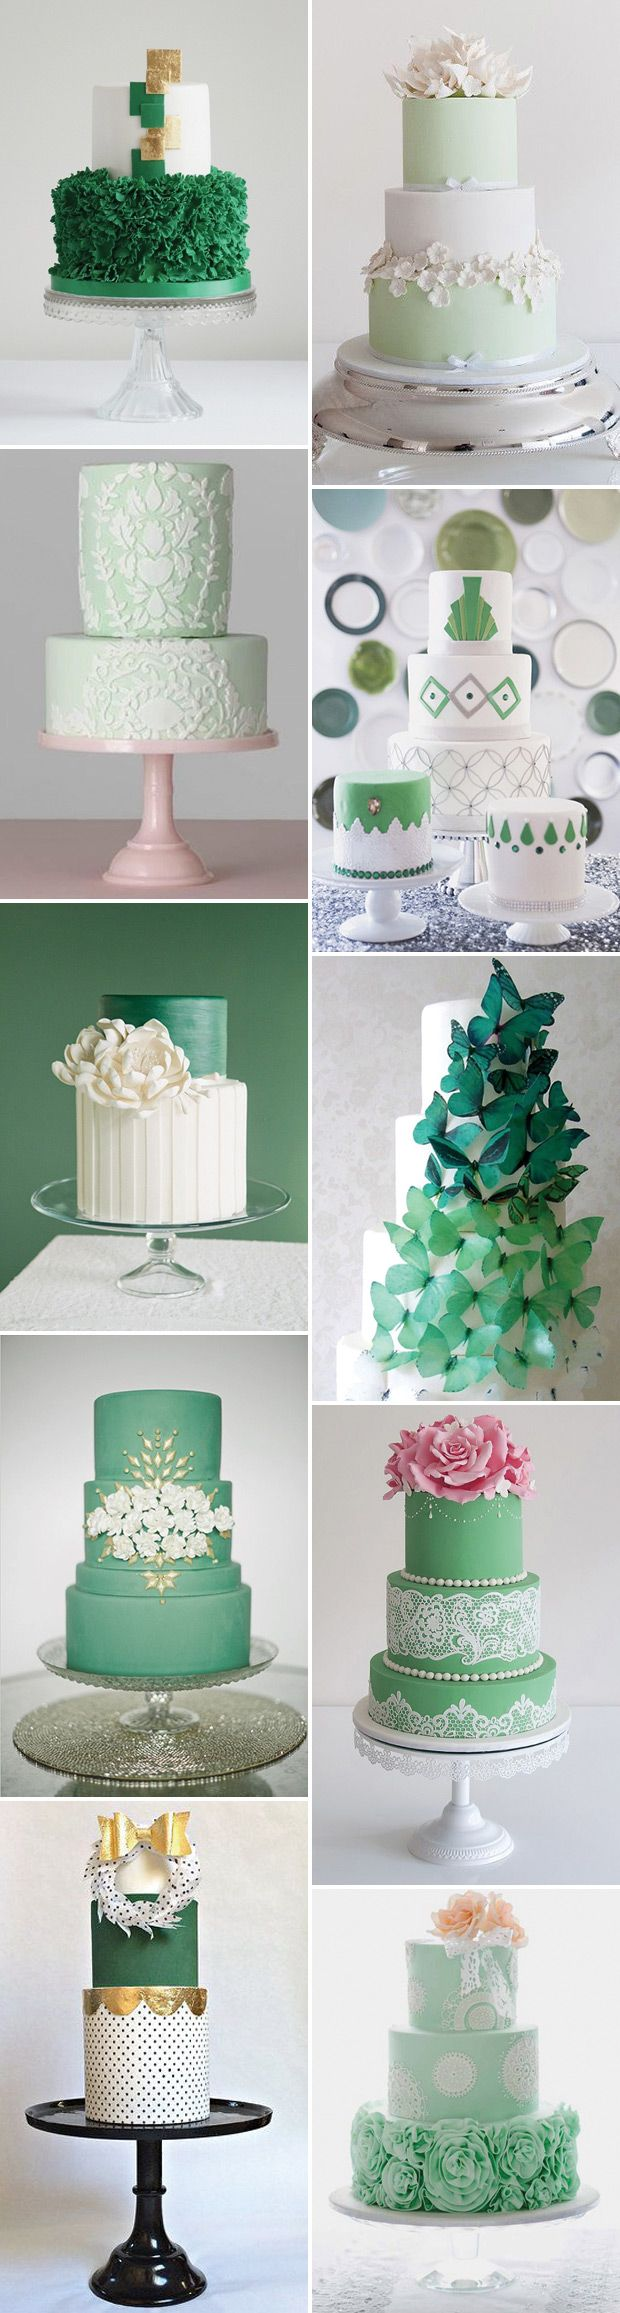 Gorgeous green wedding cake inspiration on www.onefabday.com